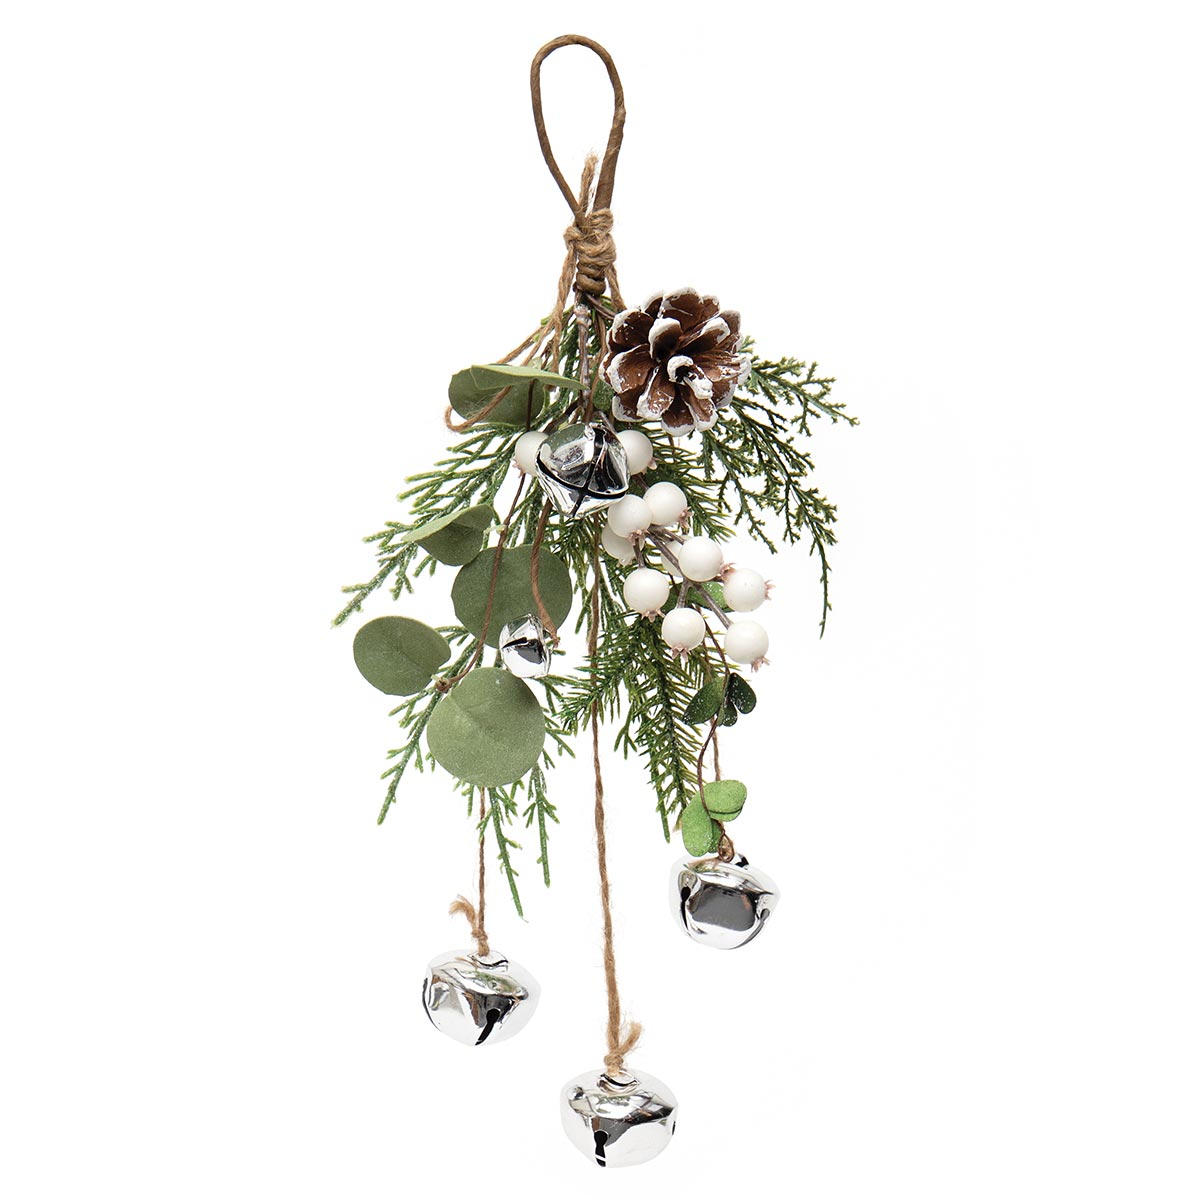 SLEIGH BELL DROP WITH EUCALYPTUS, PINE, JINGLE BELLS, GLITTER